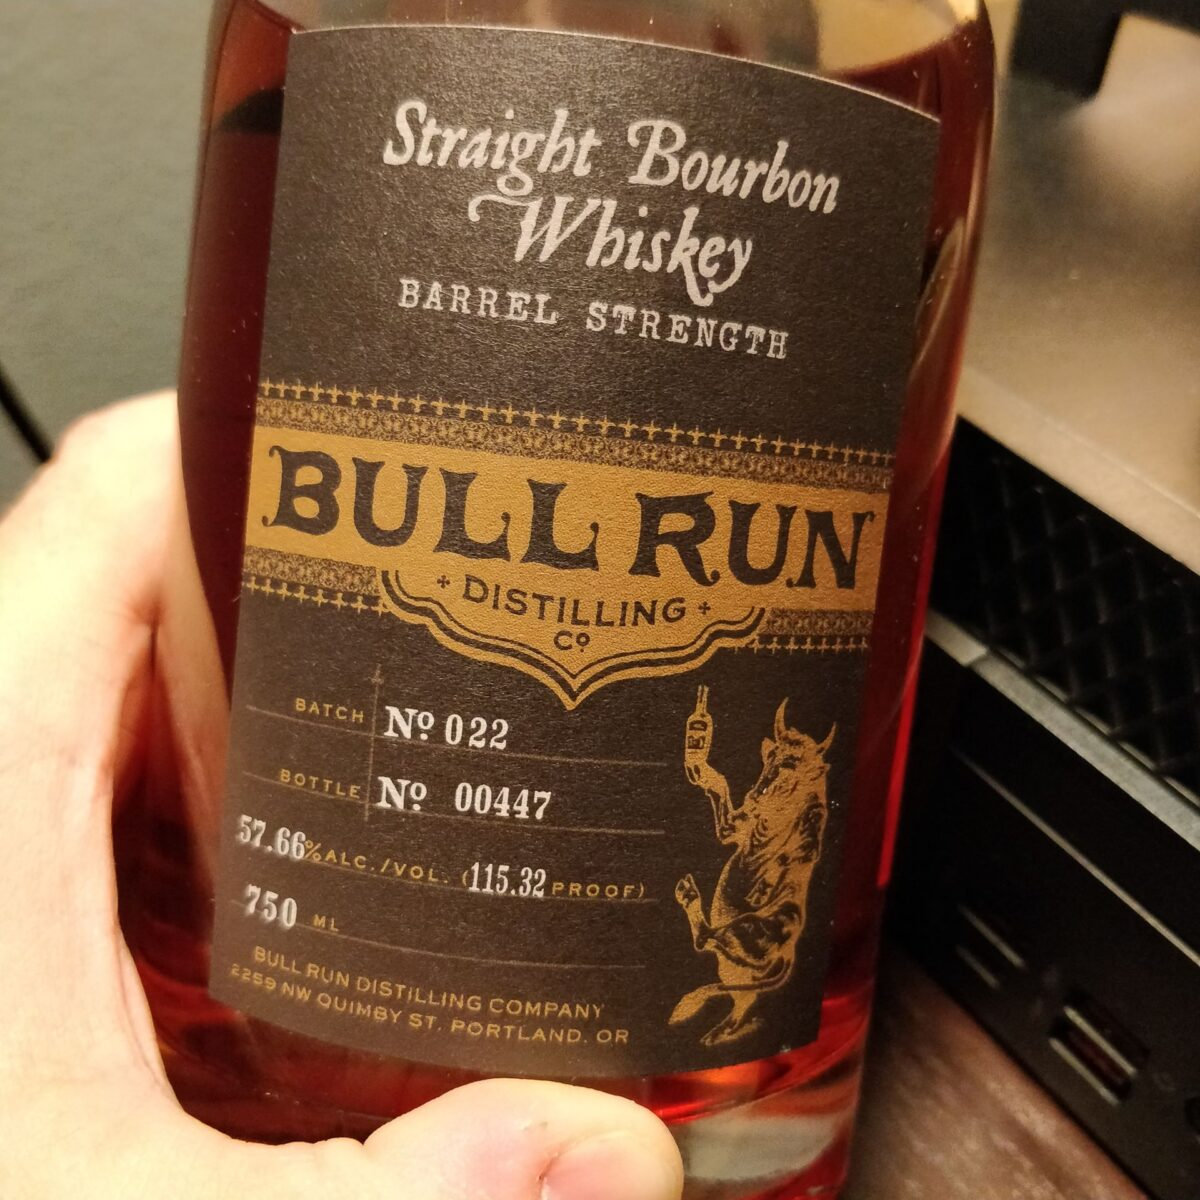 Bull Run Distilling Co Straight Bourbon Whiskey